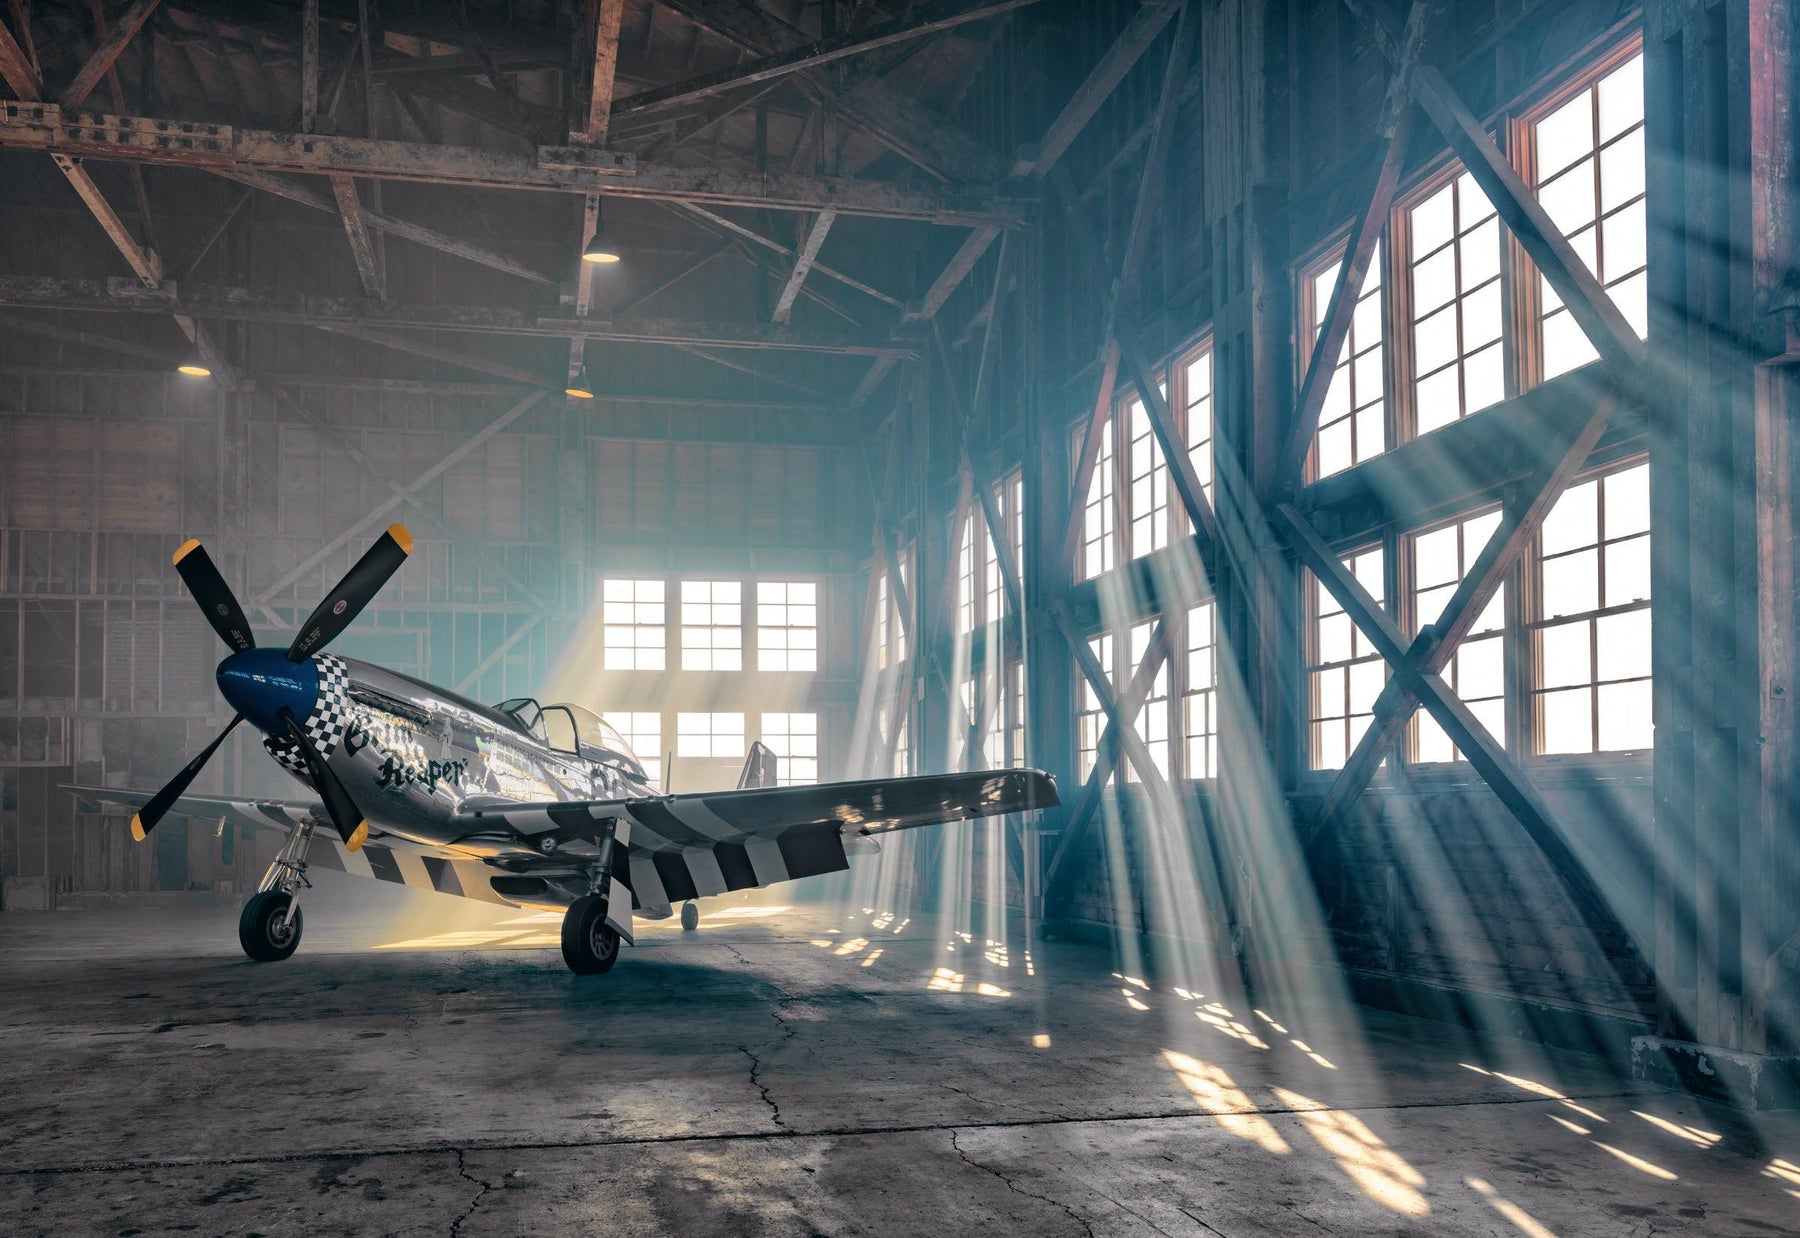 P51 Mustang airplane in the corner of a metal hanger in Aurora Oregon with the sun shining through the windows